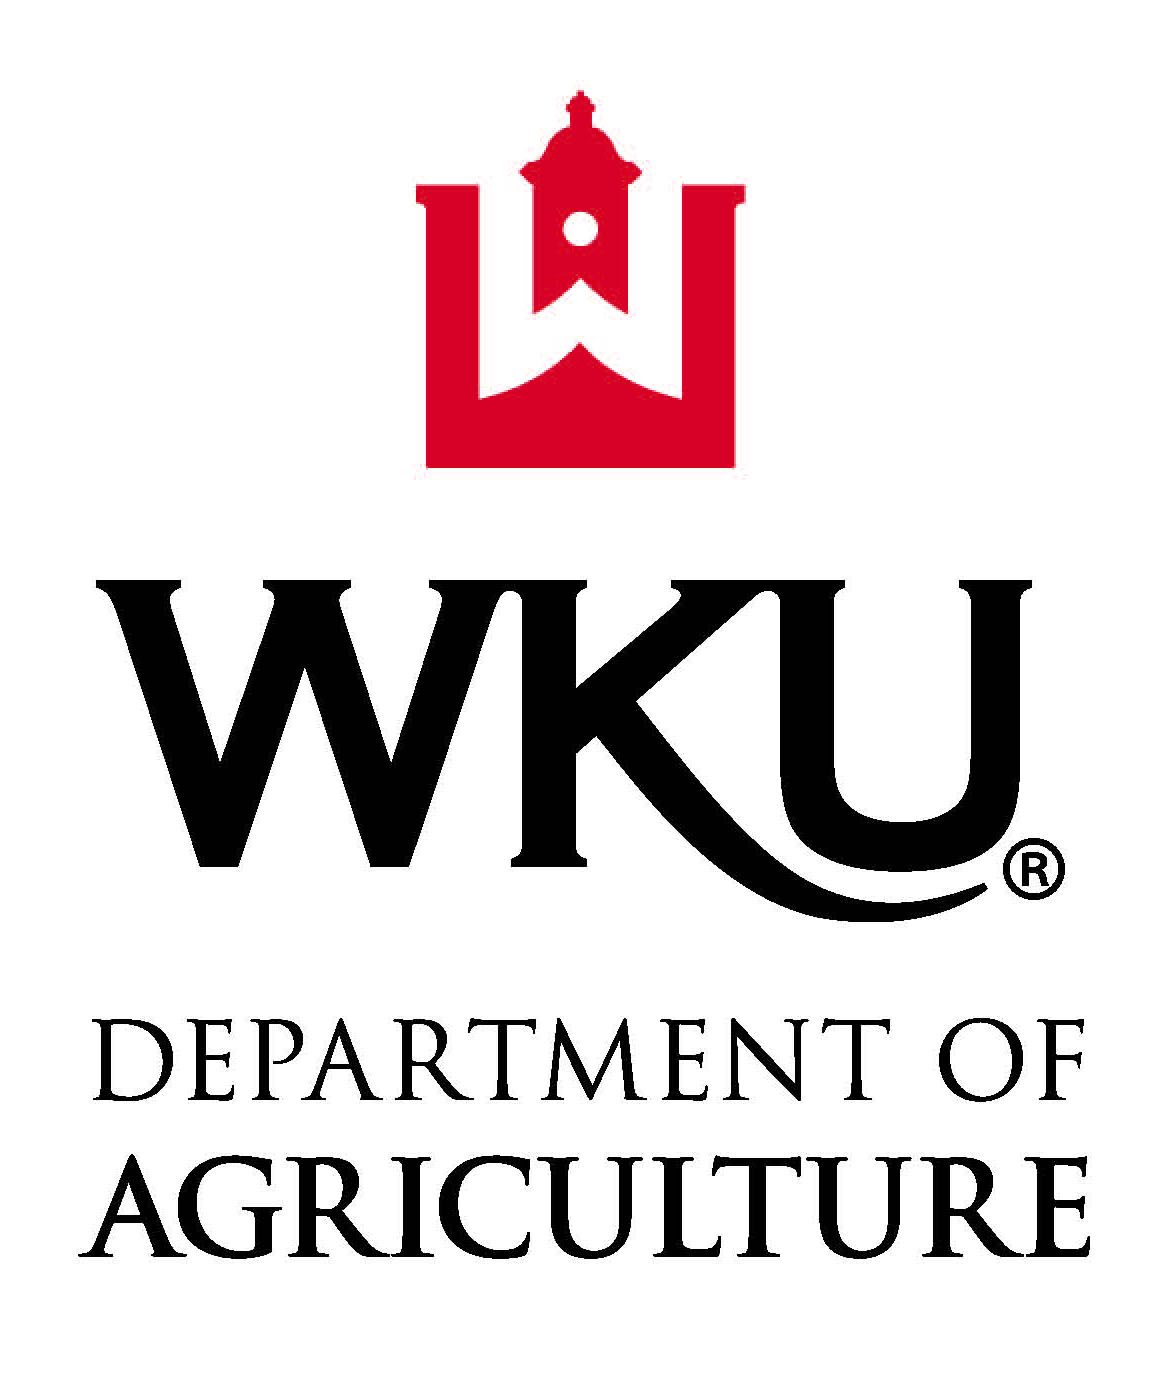 WKU Department of Agriculture